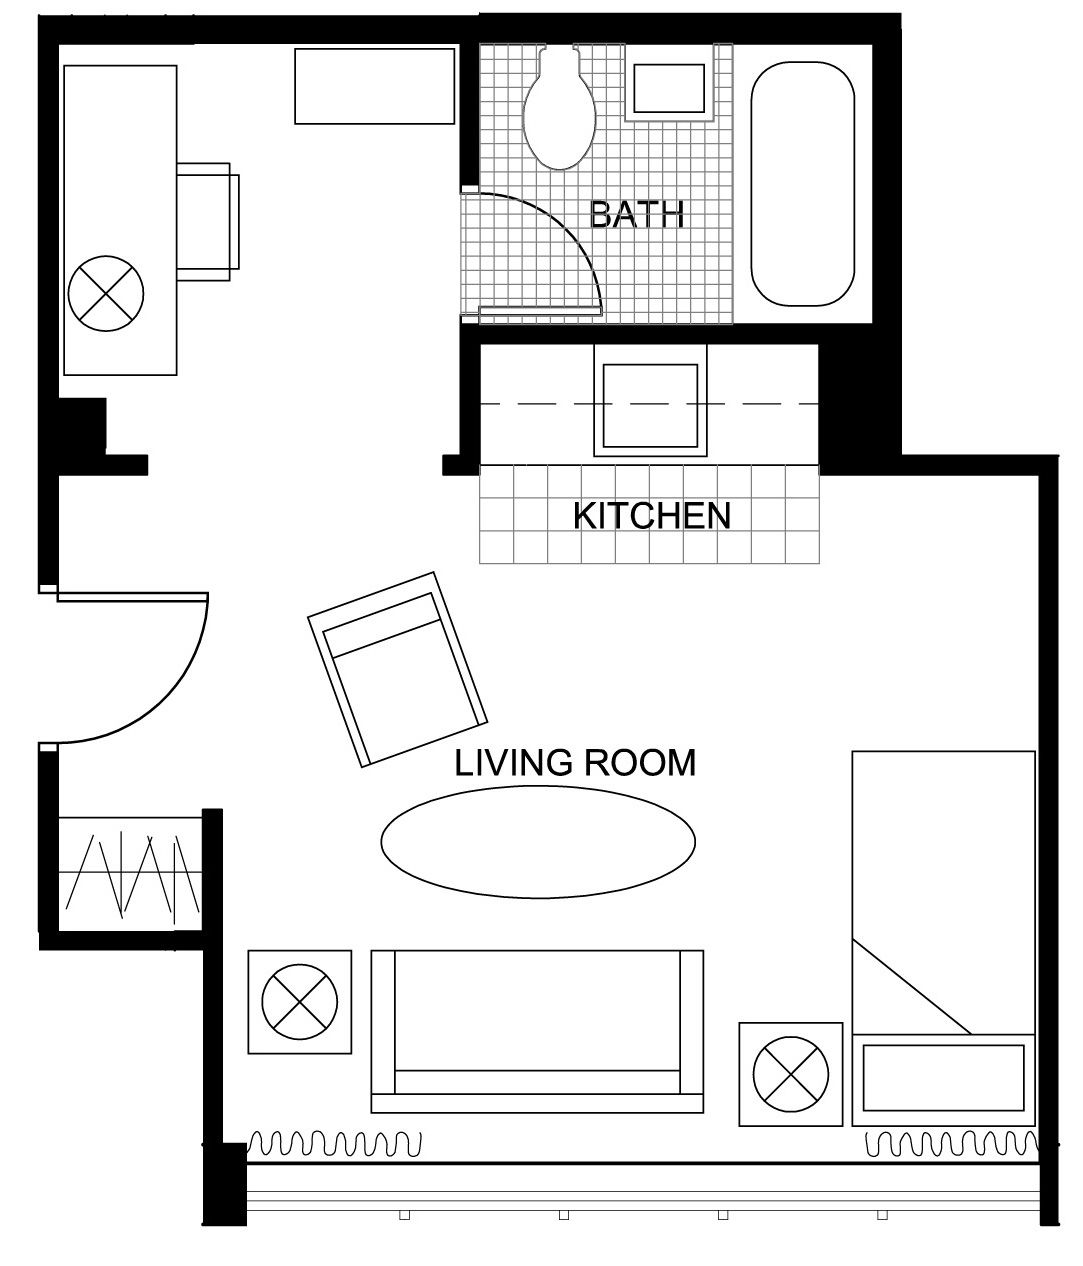 Studio Apartment Floor Plans 16 You Can Also View An Enlarged Versio Studio Apartment Floor Plans Bedroom Layouts For Small Rooms Apartment Floor Plans